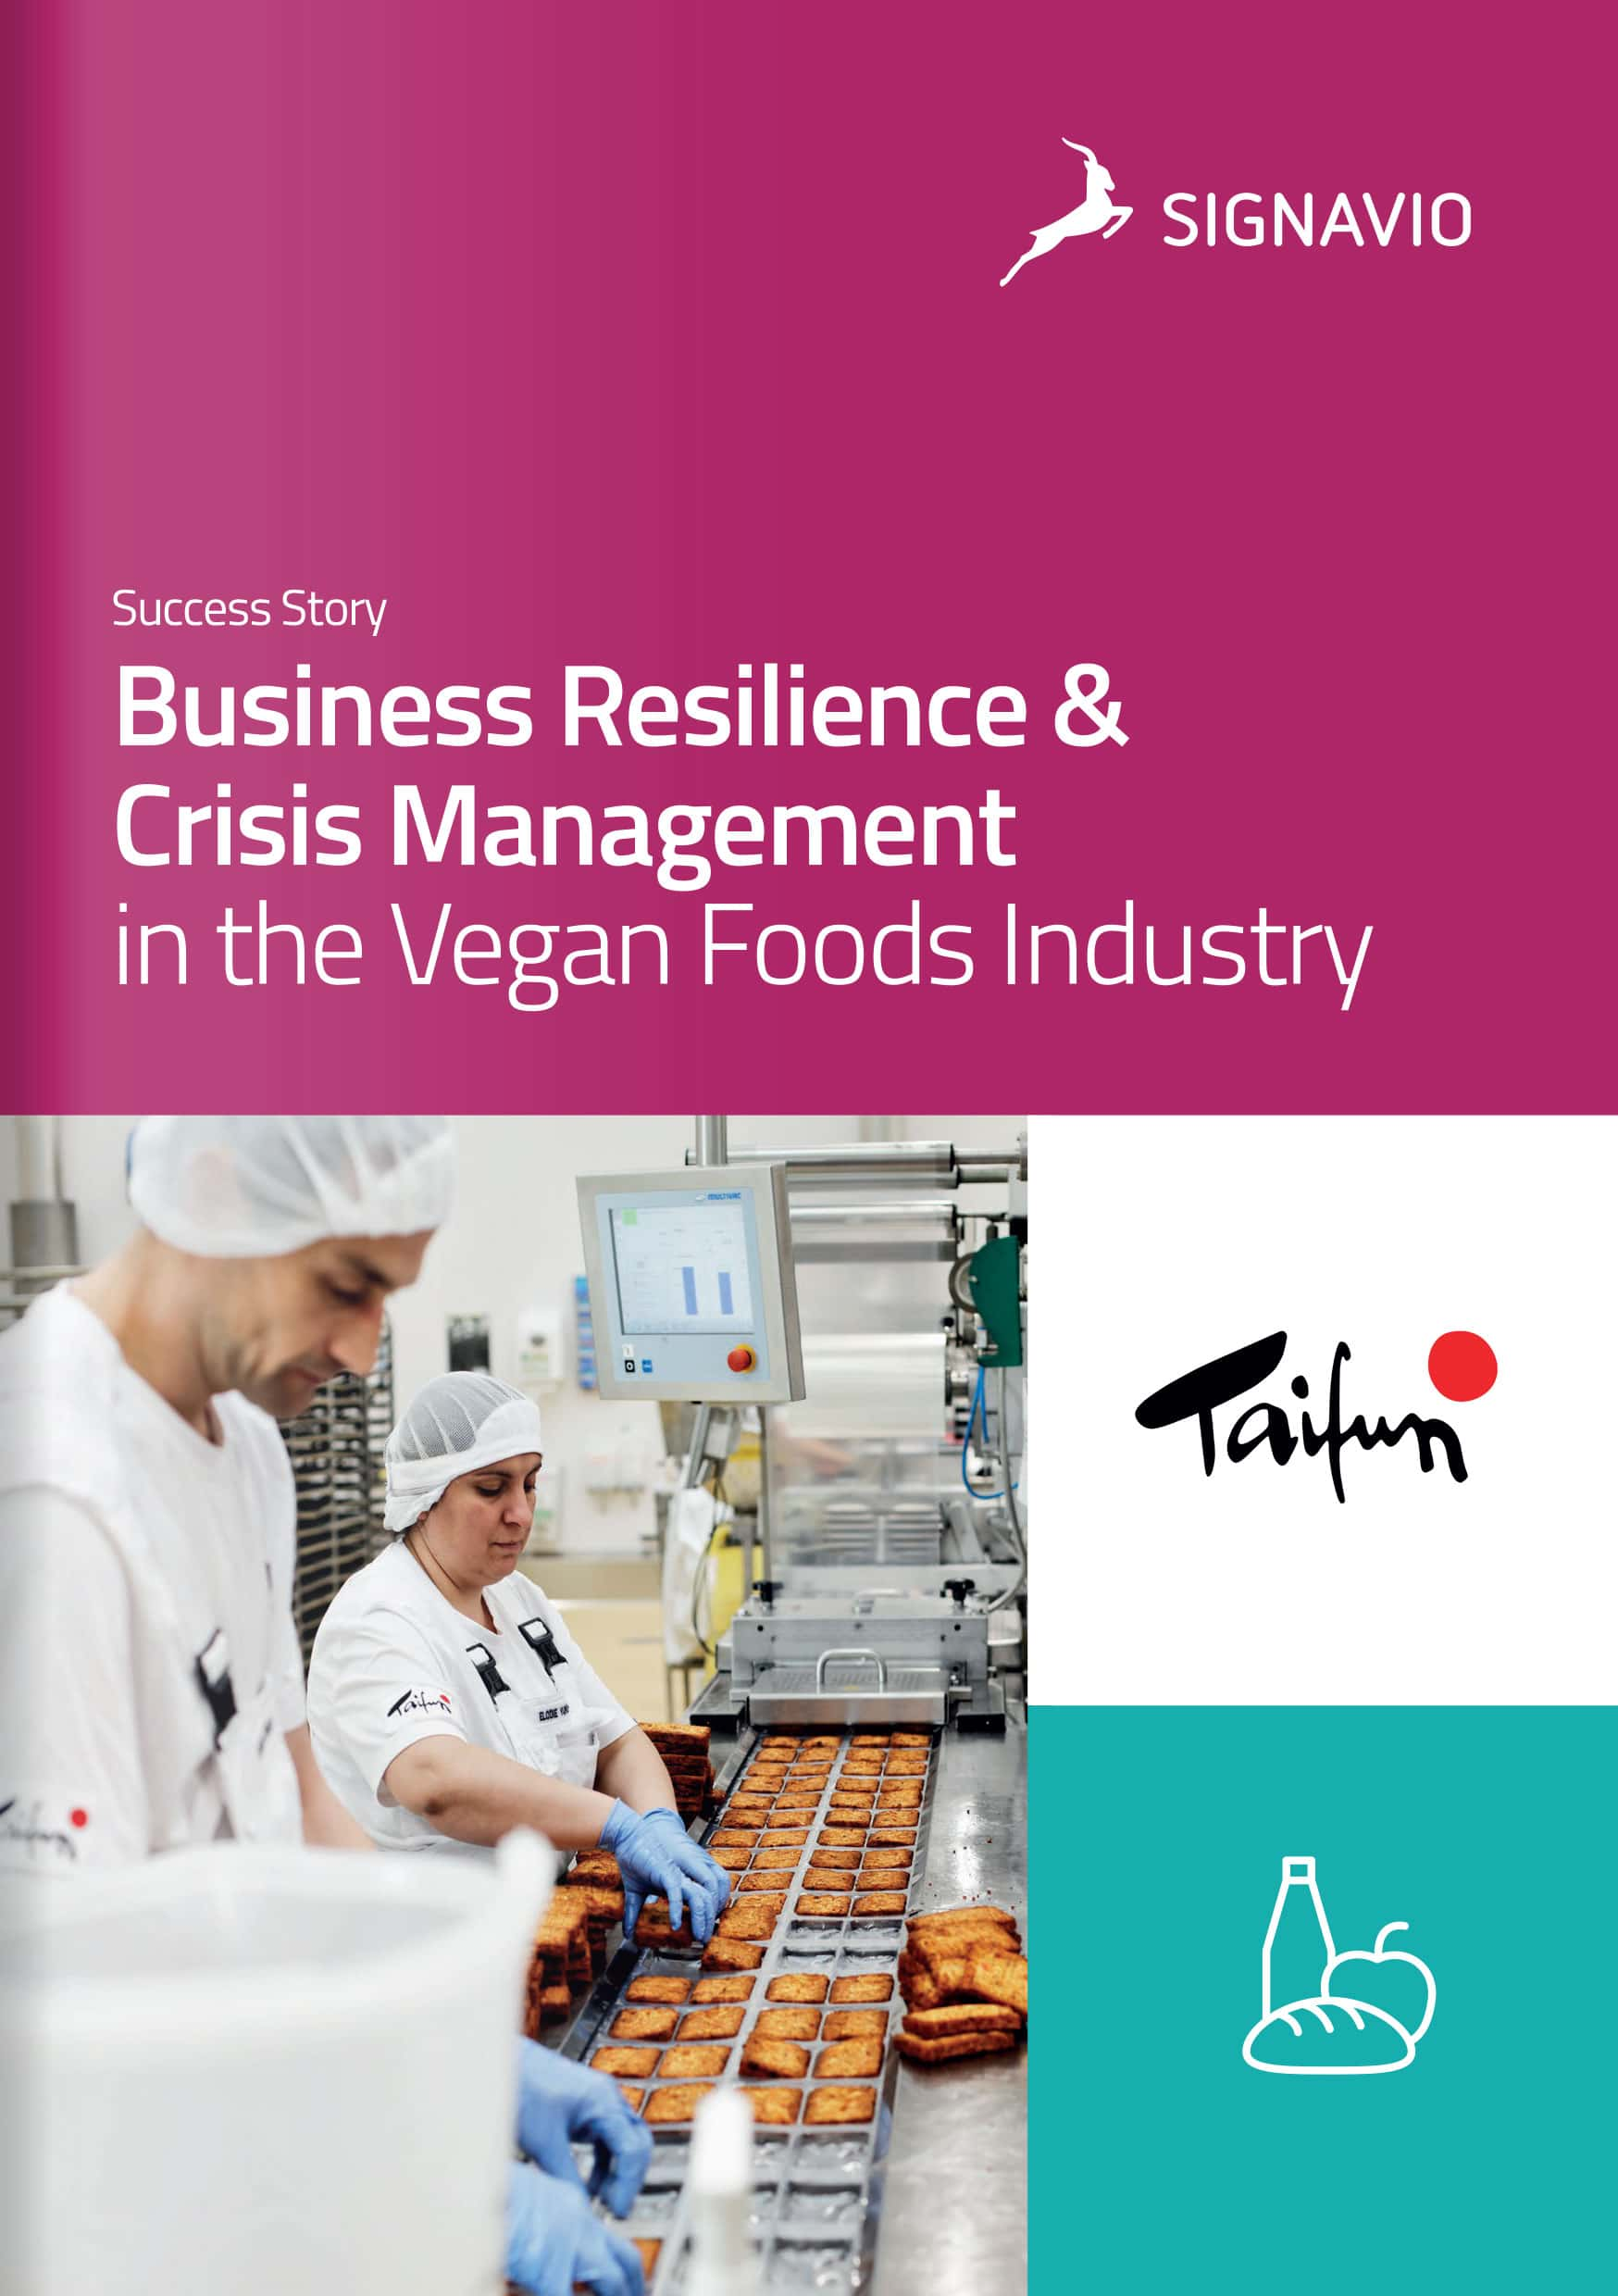 Business Resilience & Crisis Management in the Vegan Foods Industry front cover image